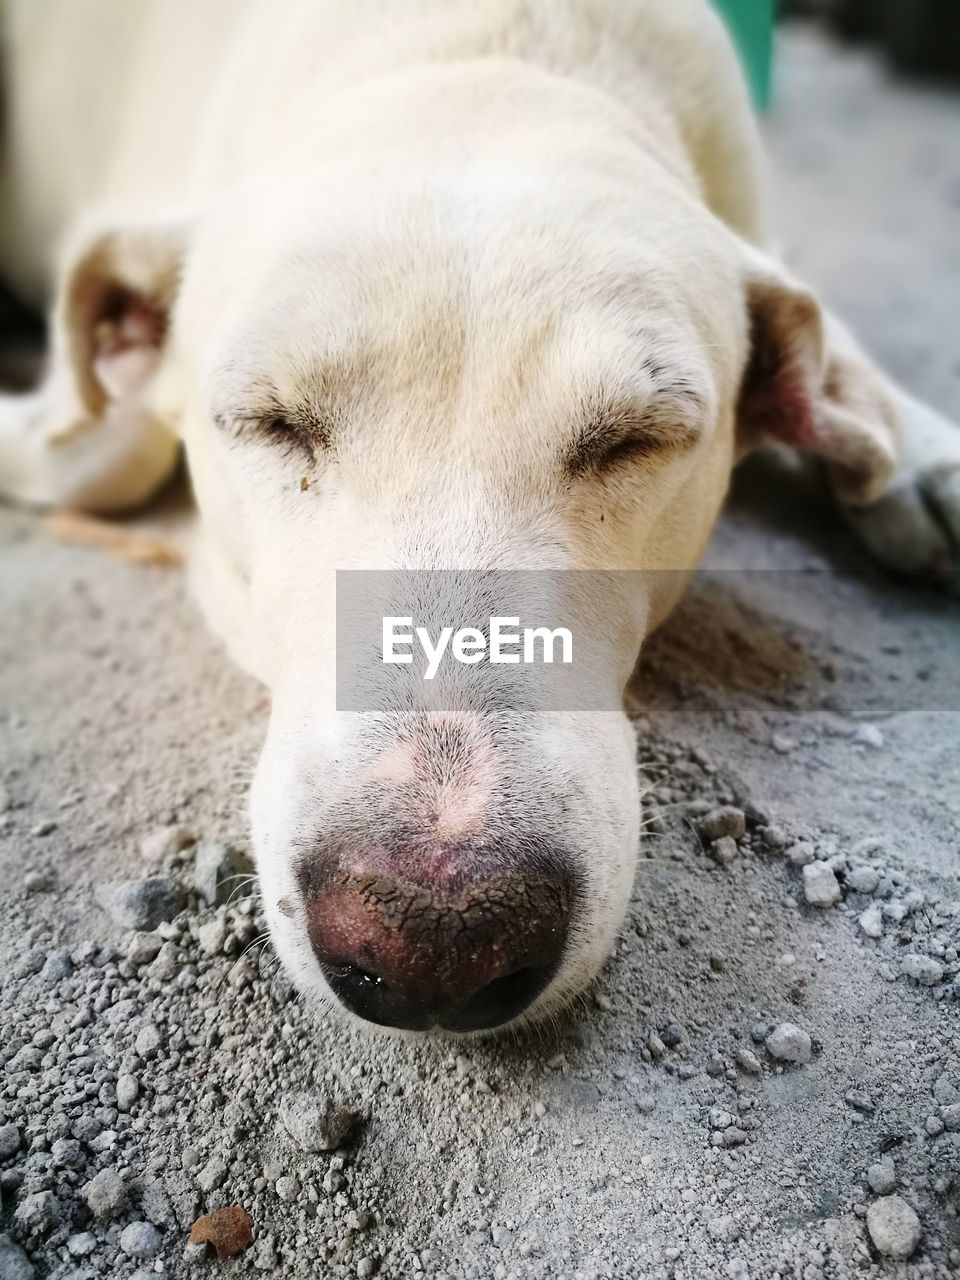 one animal, mammal, domestic, animal themes, animal, pets, domestic animals, dog, canine, vertebrate, close-up, animal body part, relaxation, animal head, lying down, no people, focus on foreground, portrait, day, resting, animal nose, snout, whisker